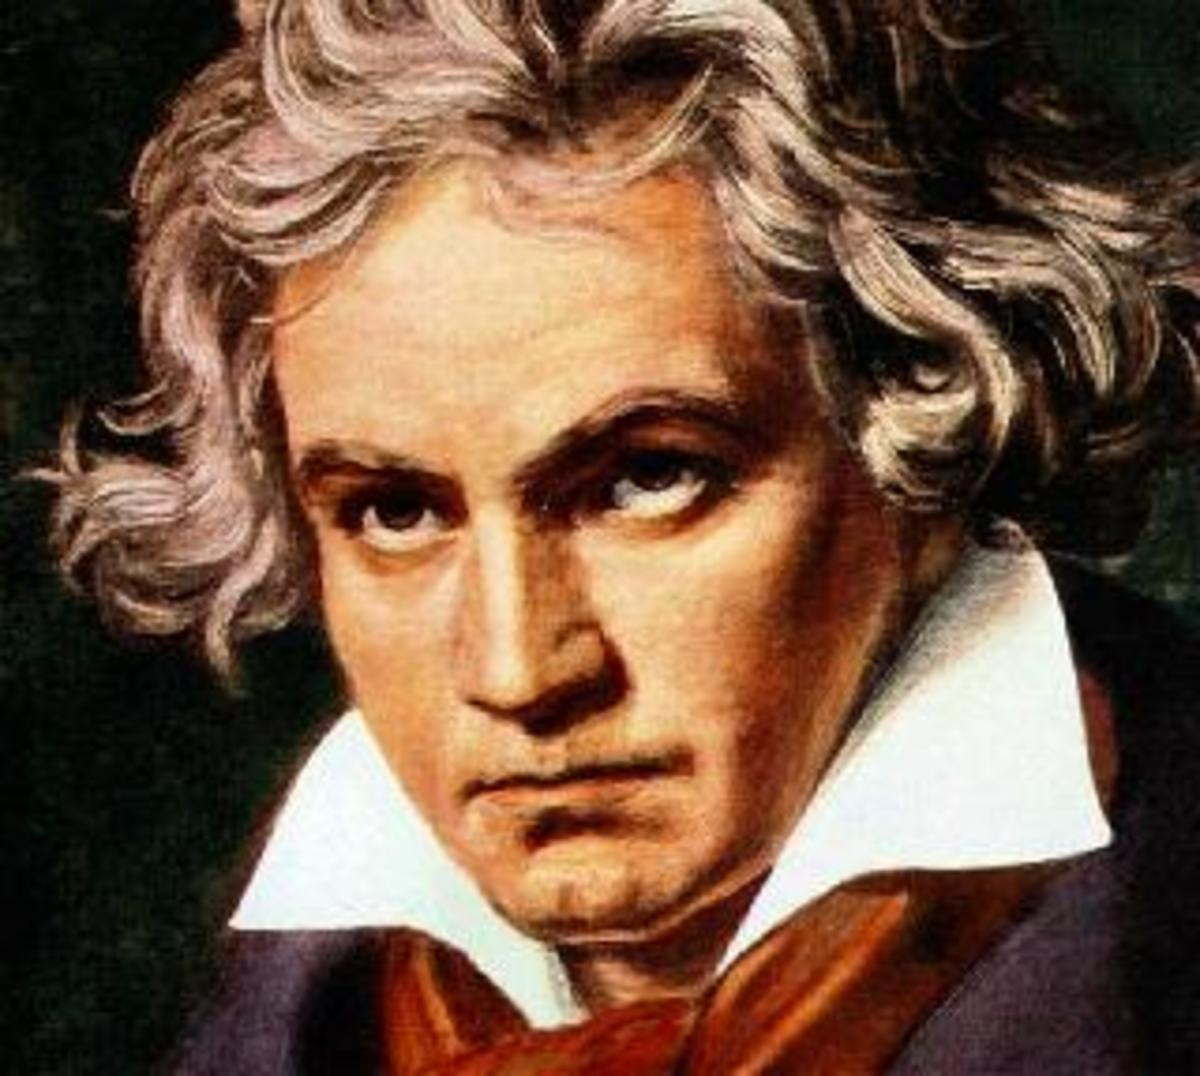 Ludwig van Beethoven, a German composer and pianist (1770)